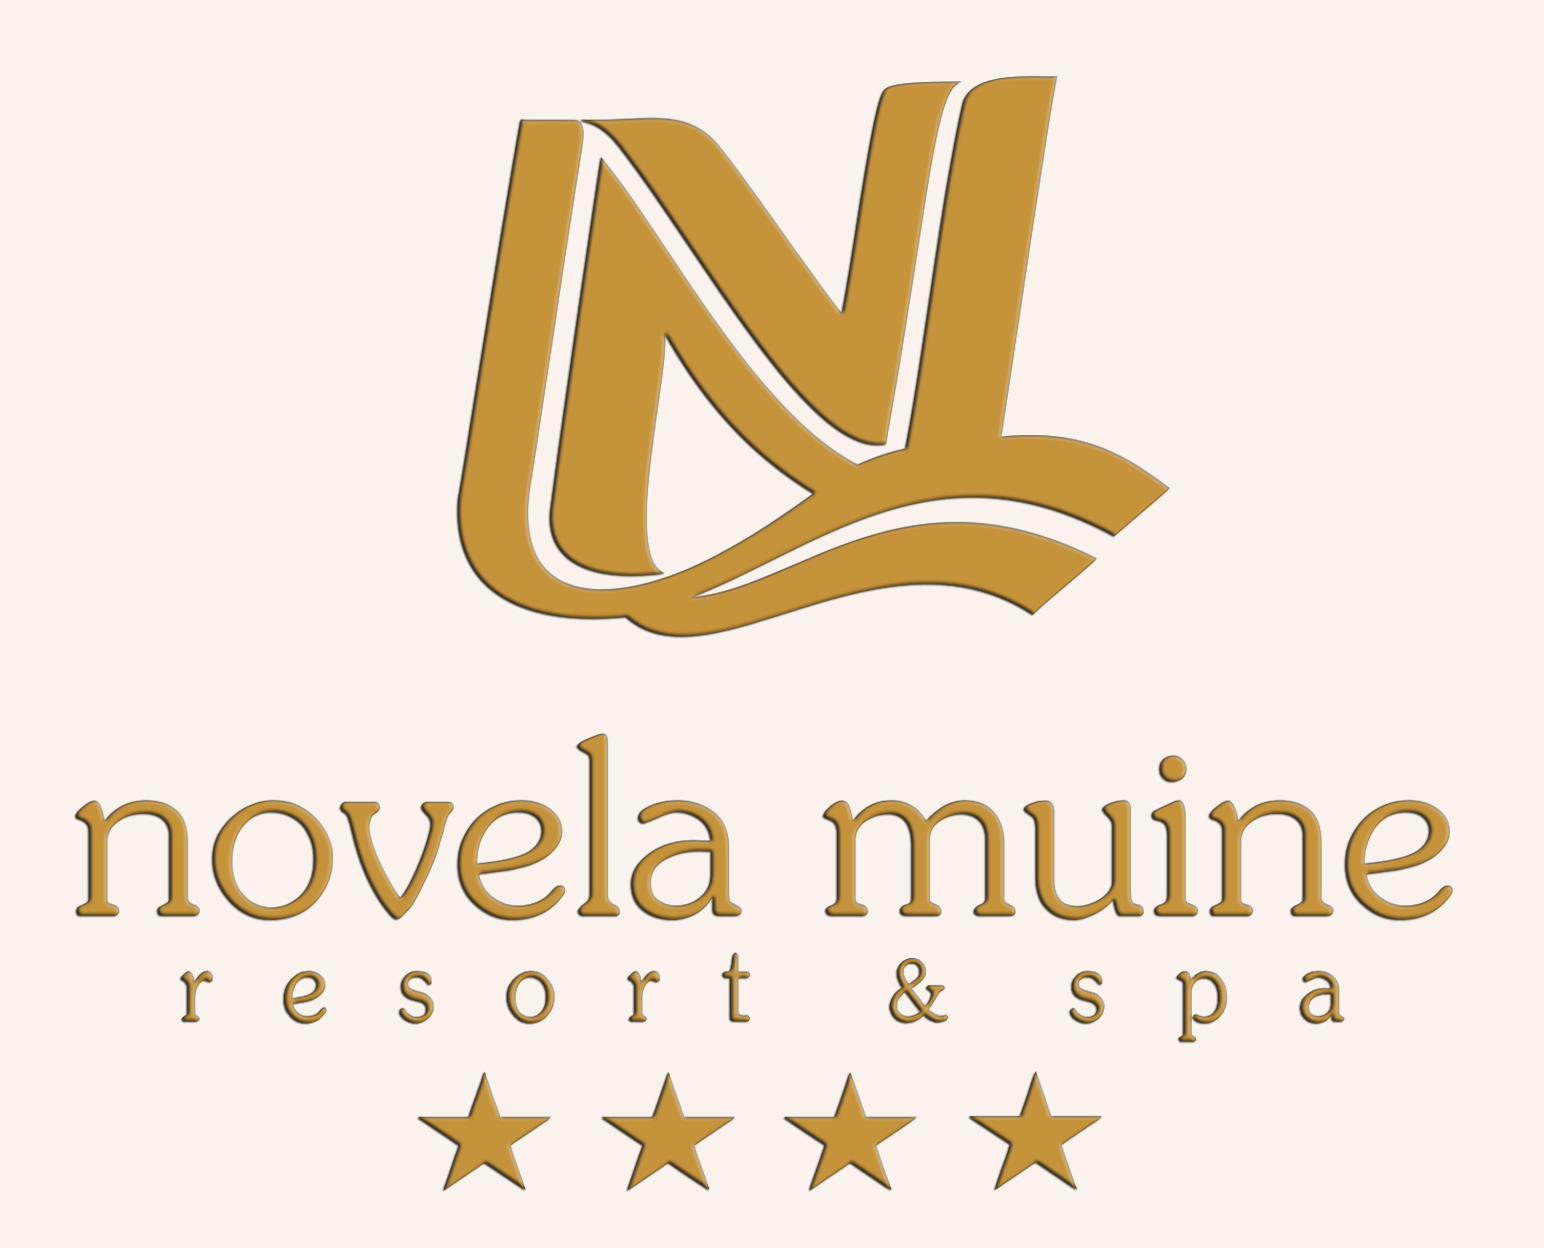 Novela Resort & Spa - Novela Resort & Spa is located on Vietnam's beautiful southern coast at Muine, Phan Thiet city, Binh Thuan province. Inheriting natural beauty and year-round favorable weather, it is the ideal destination for both holidays and business trips.